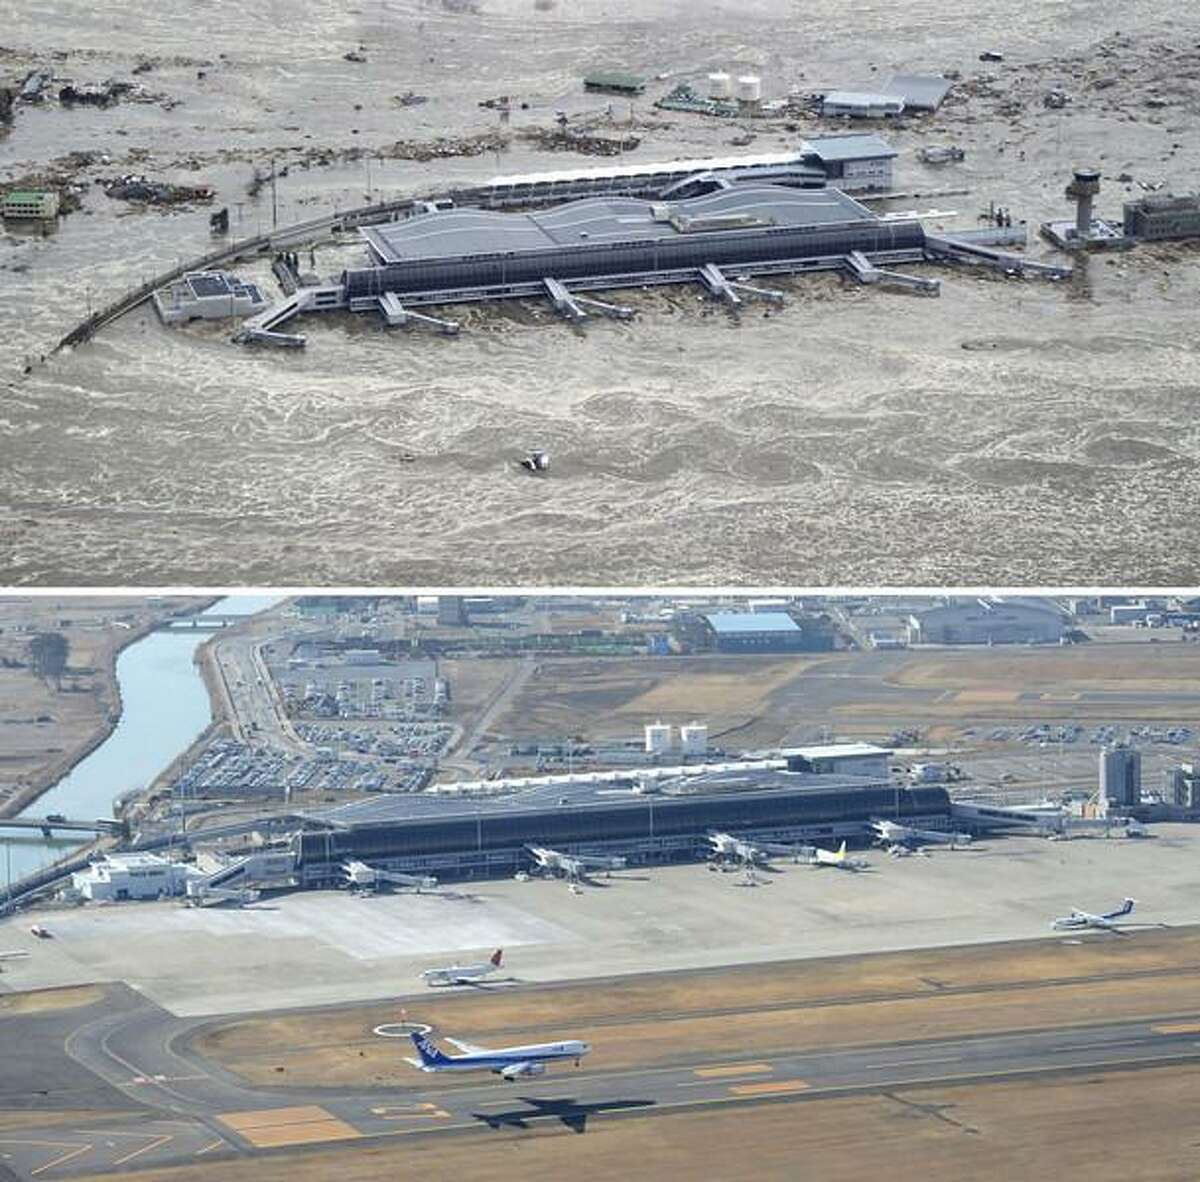 This combination photo taken March 11, 2011, top, and Monday, March 4, 2013 shows an aerial view of Sendai Airport in Natori, Miyagi prefecture. The airport resumed operation only about one month after the tsunami and functioned as the major base of the rescue operation. March 11, 2013 is the 2-year anniversary of the earthquake and tsunami which devastated the northeastern Pacific coast of Japan. (AP Photo/Kyodo News)